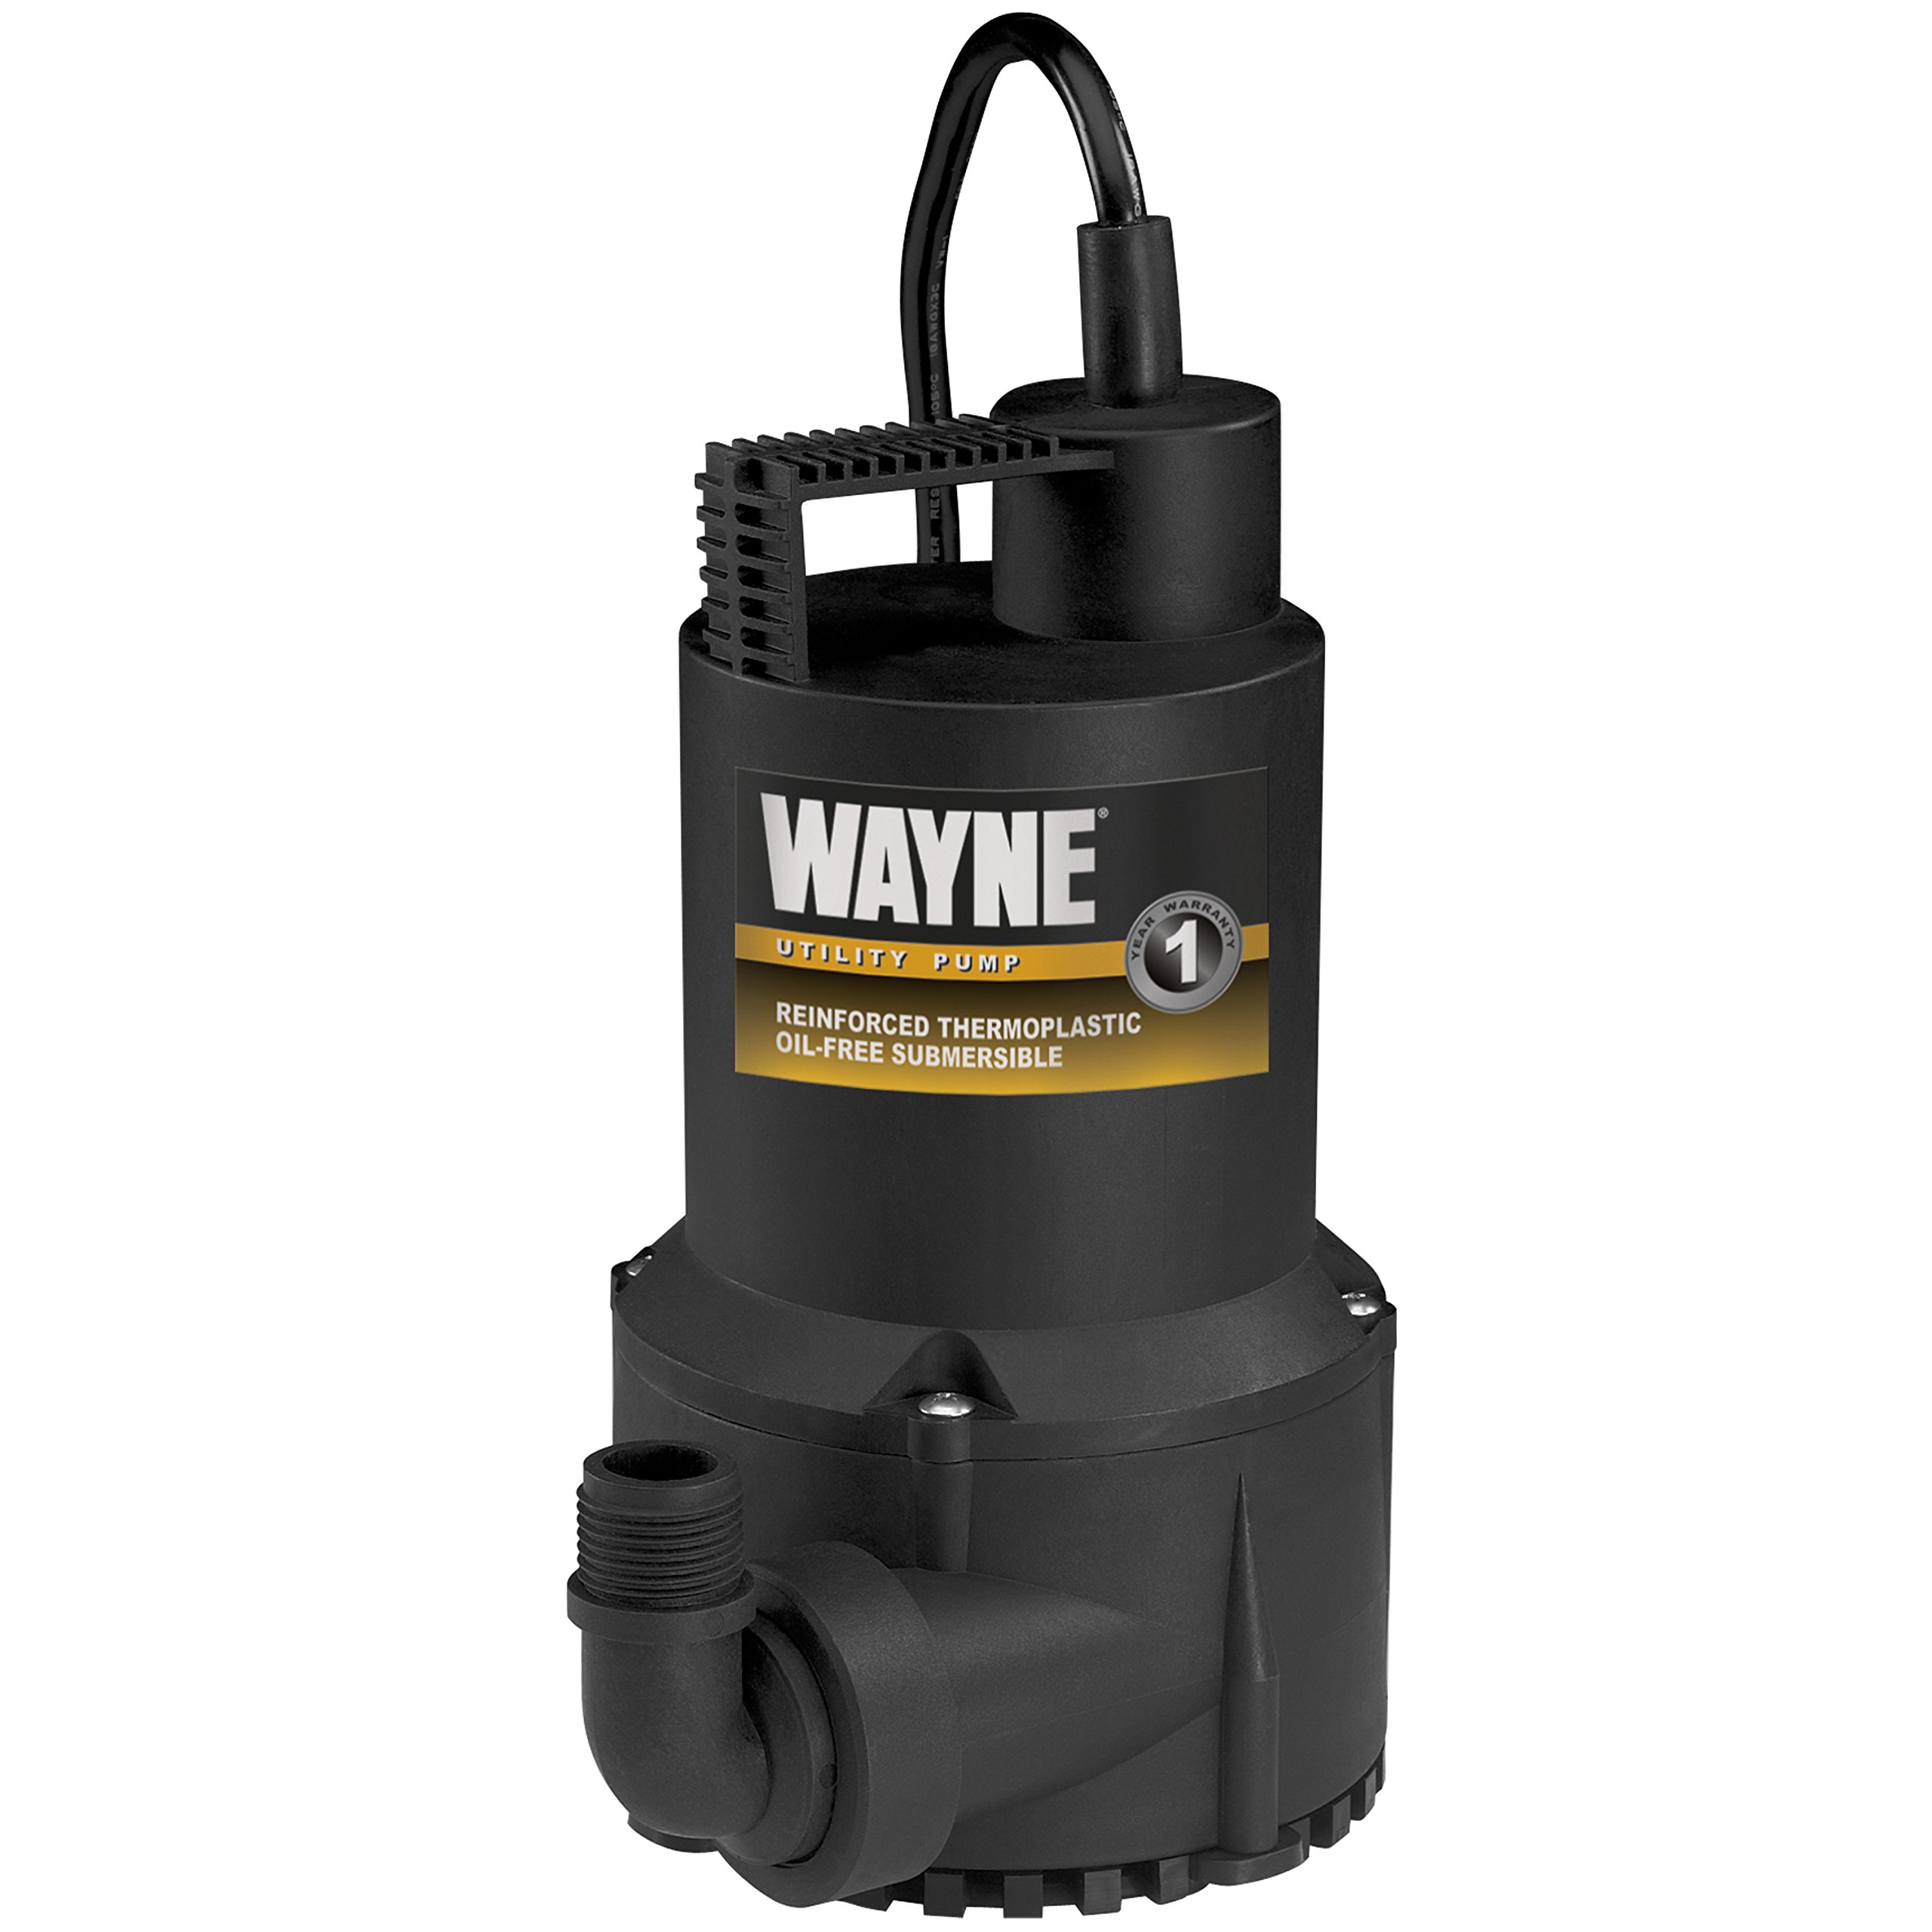 WAYNE RUP160 1/6 HP Oil Free Submersible Multi-Purpose Water Pump by Wayne